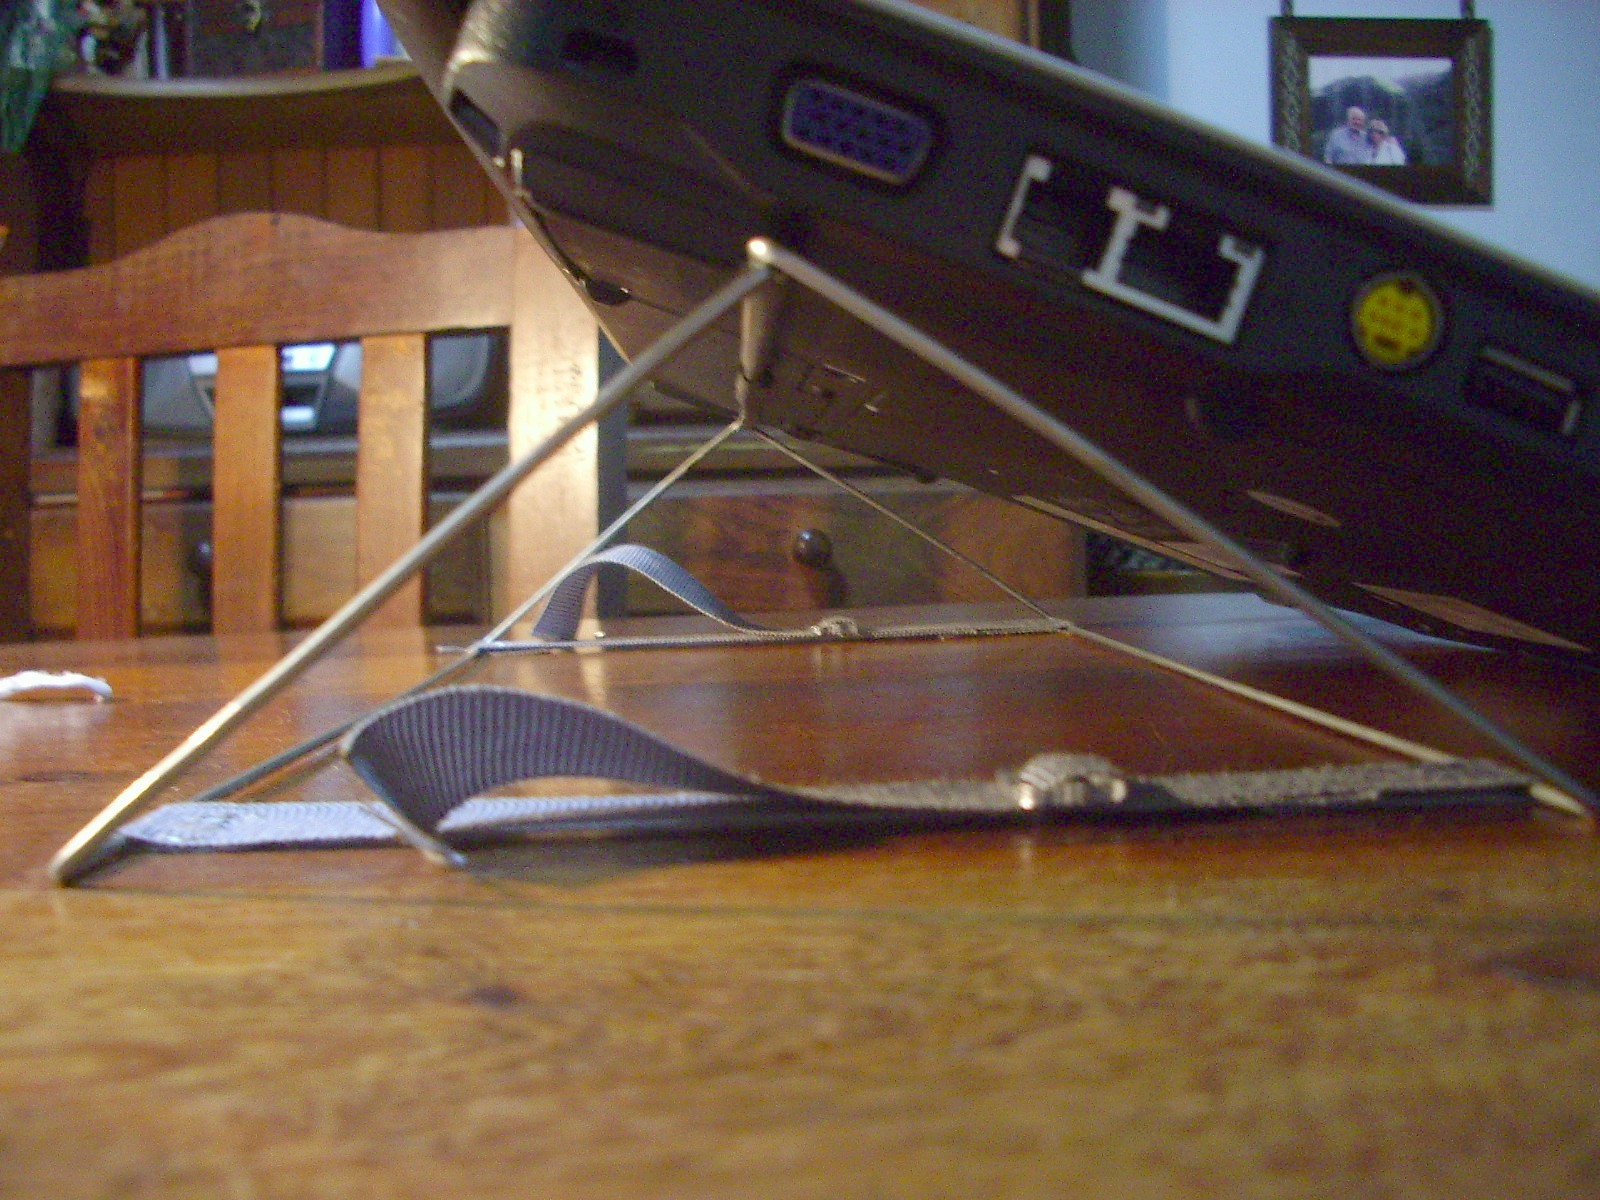 Another laptop stand (otro soporte para notebook)